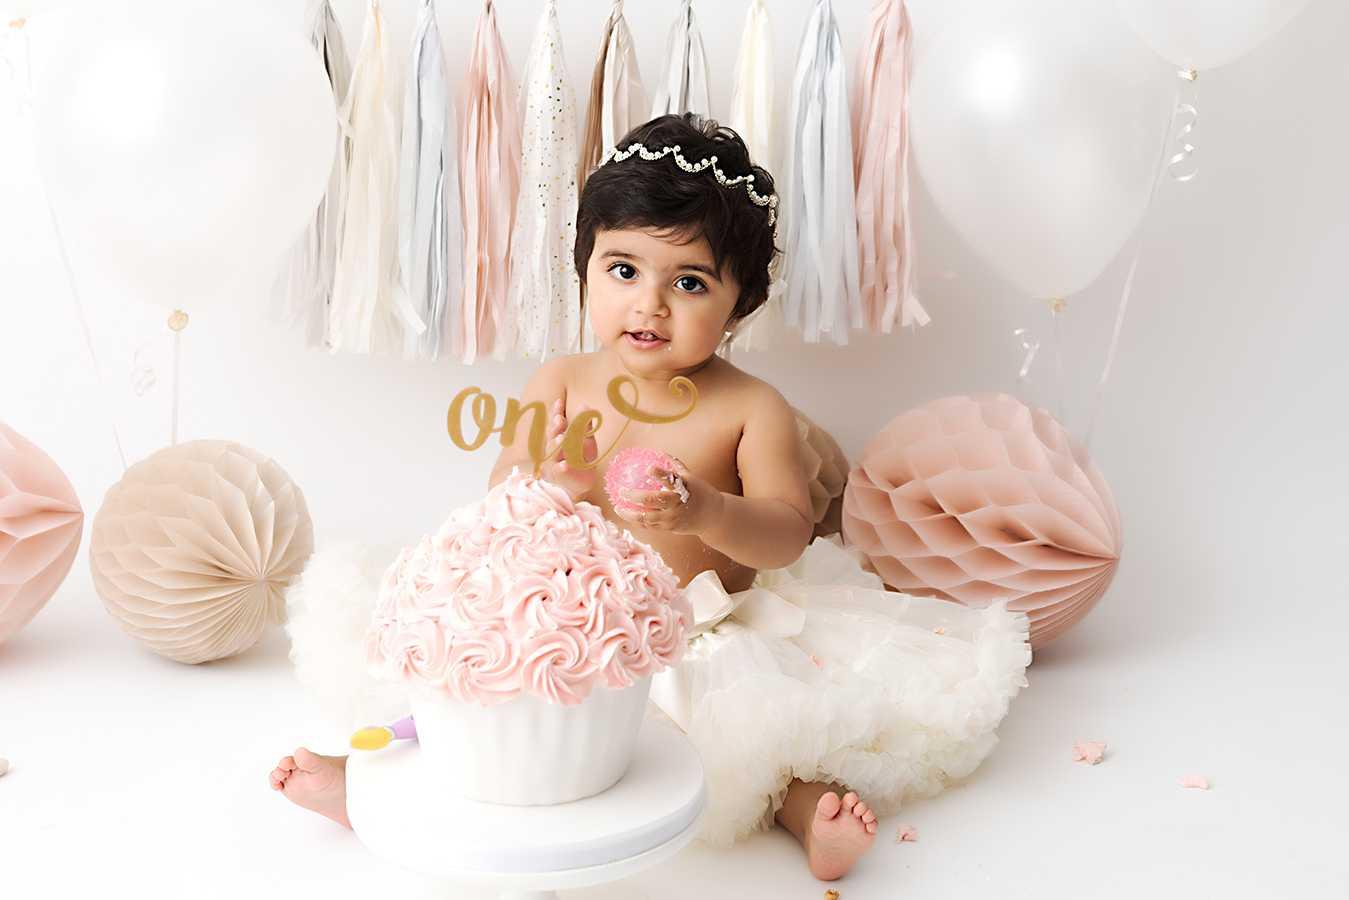 Photograph of baby girl during a Cake Smash Photoshoot in Cheadle Stockport